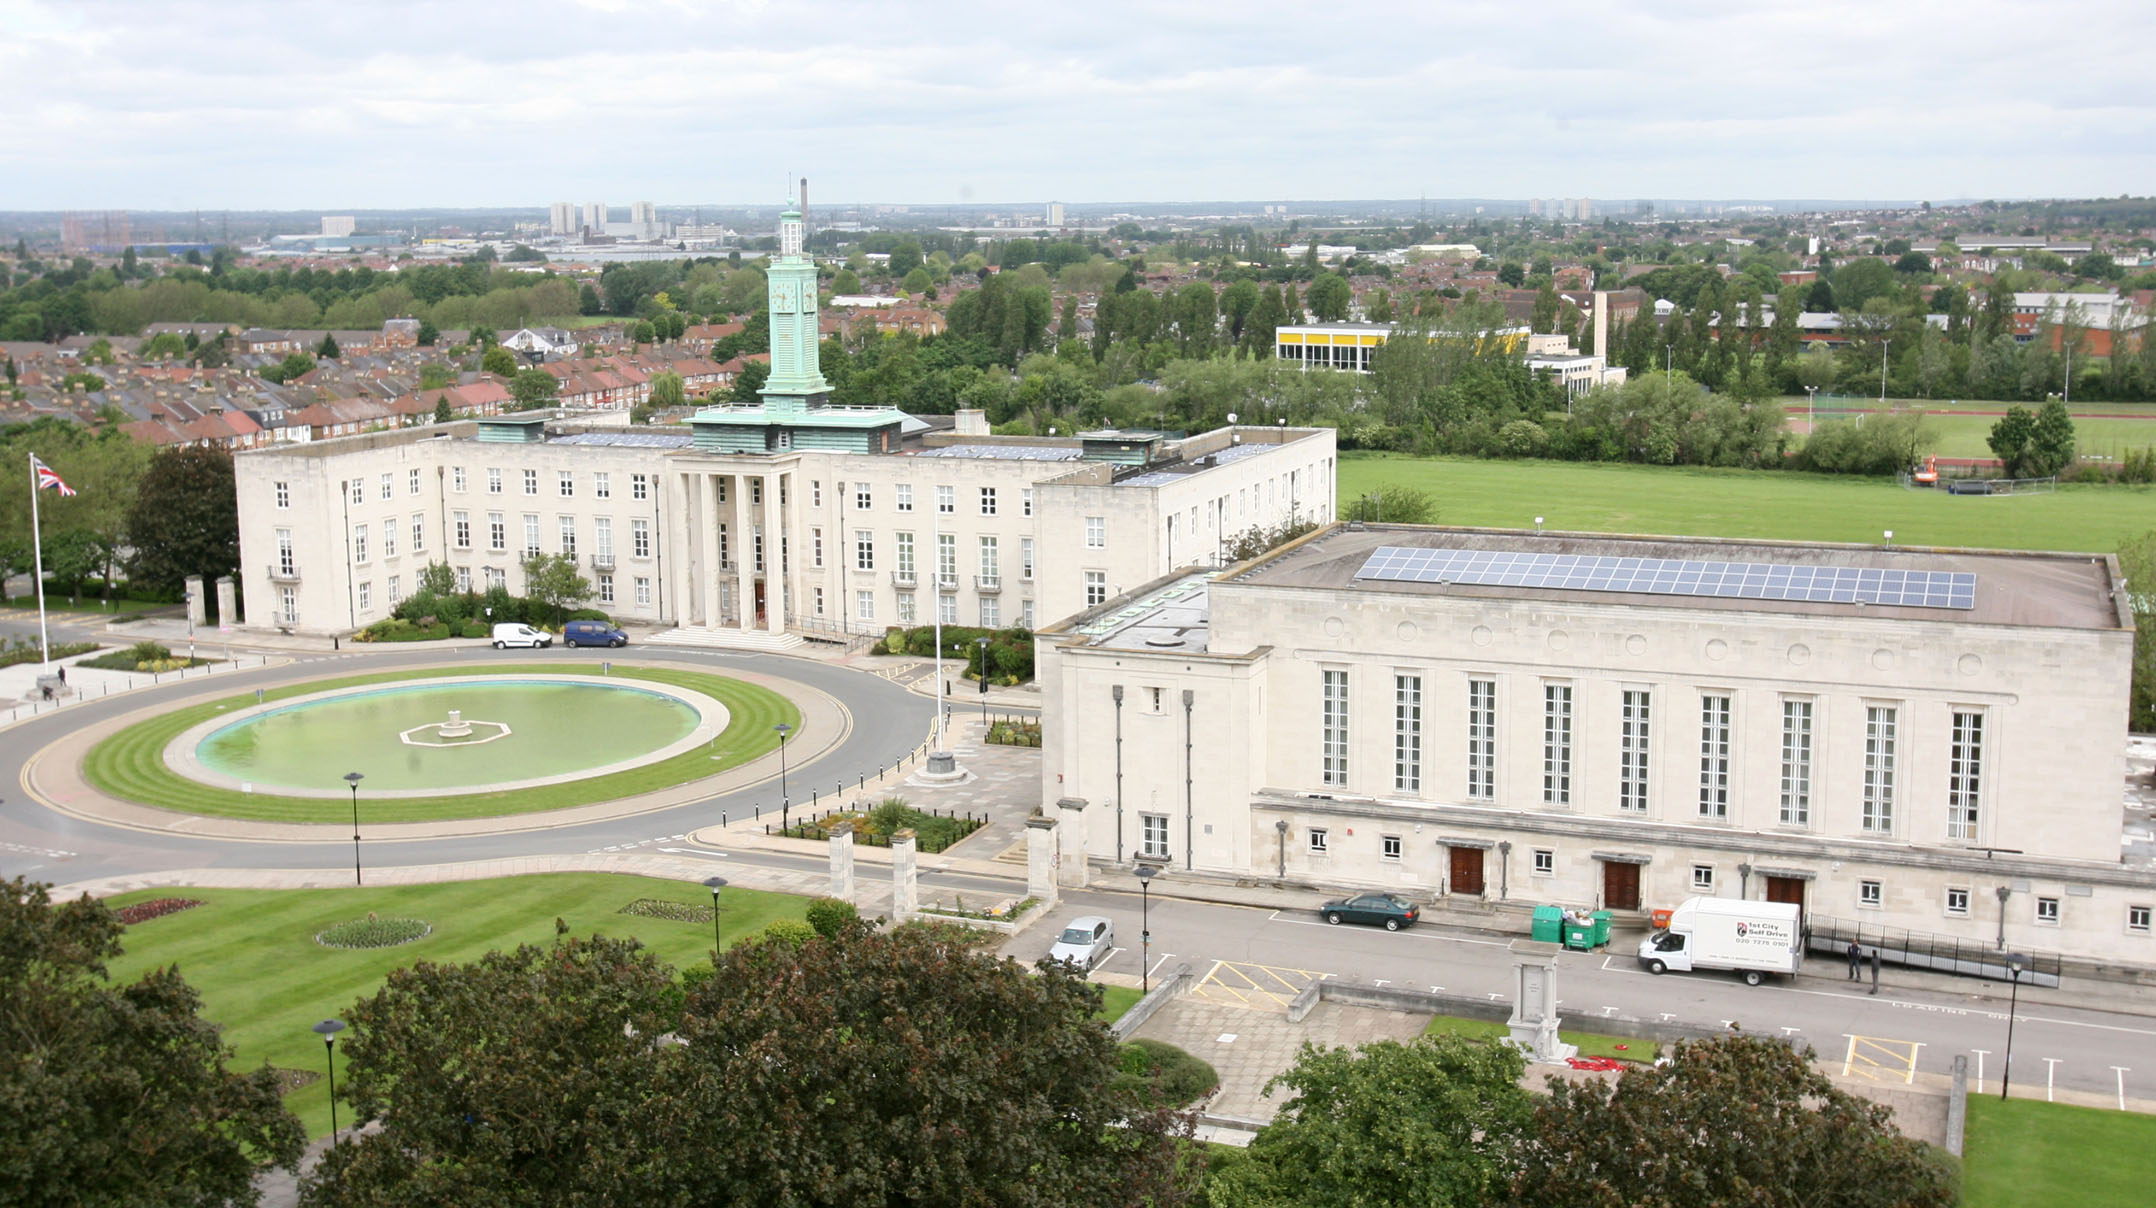 Planning applications submitted for Waltham Forest